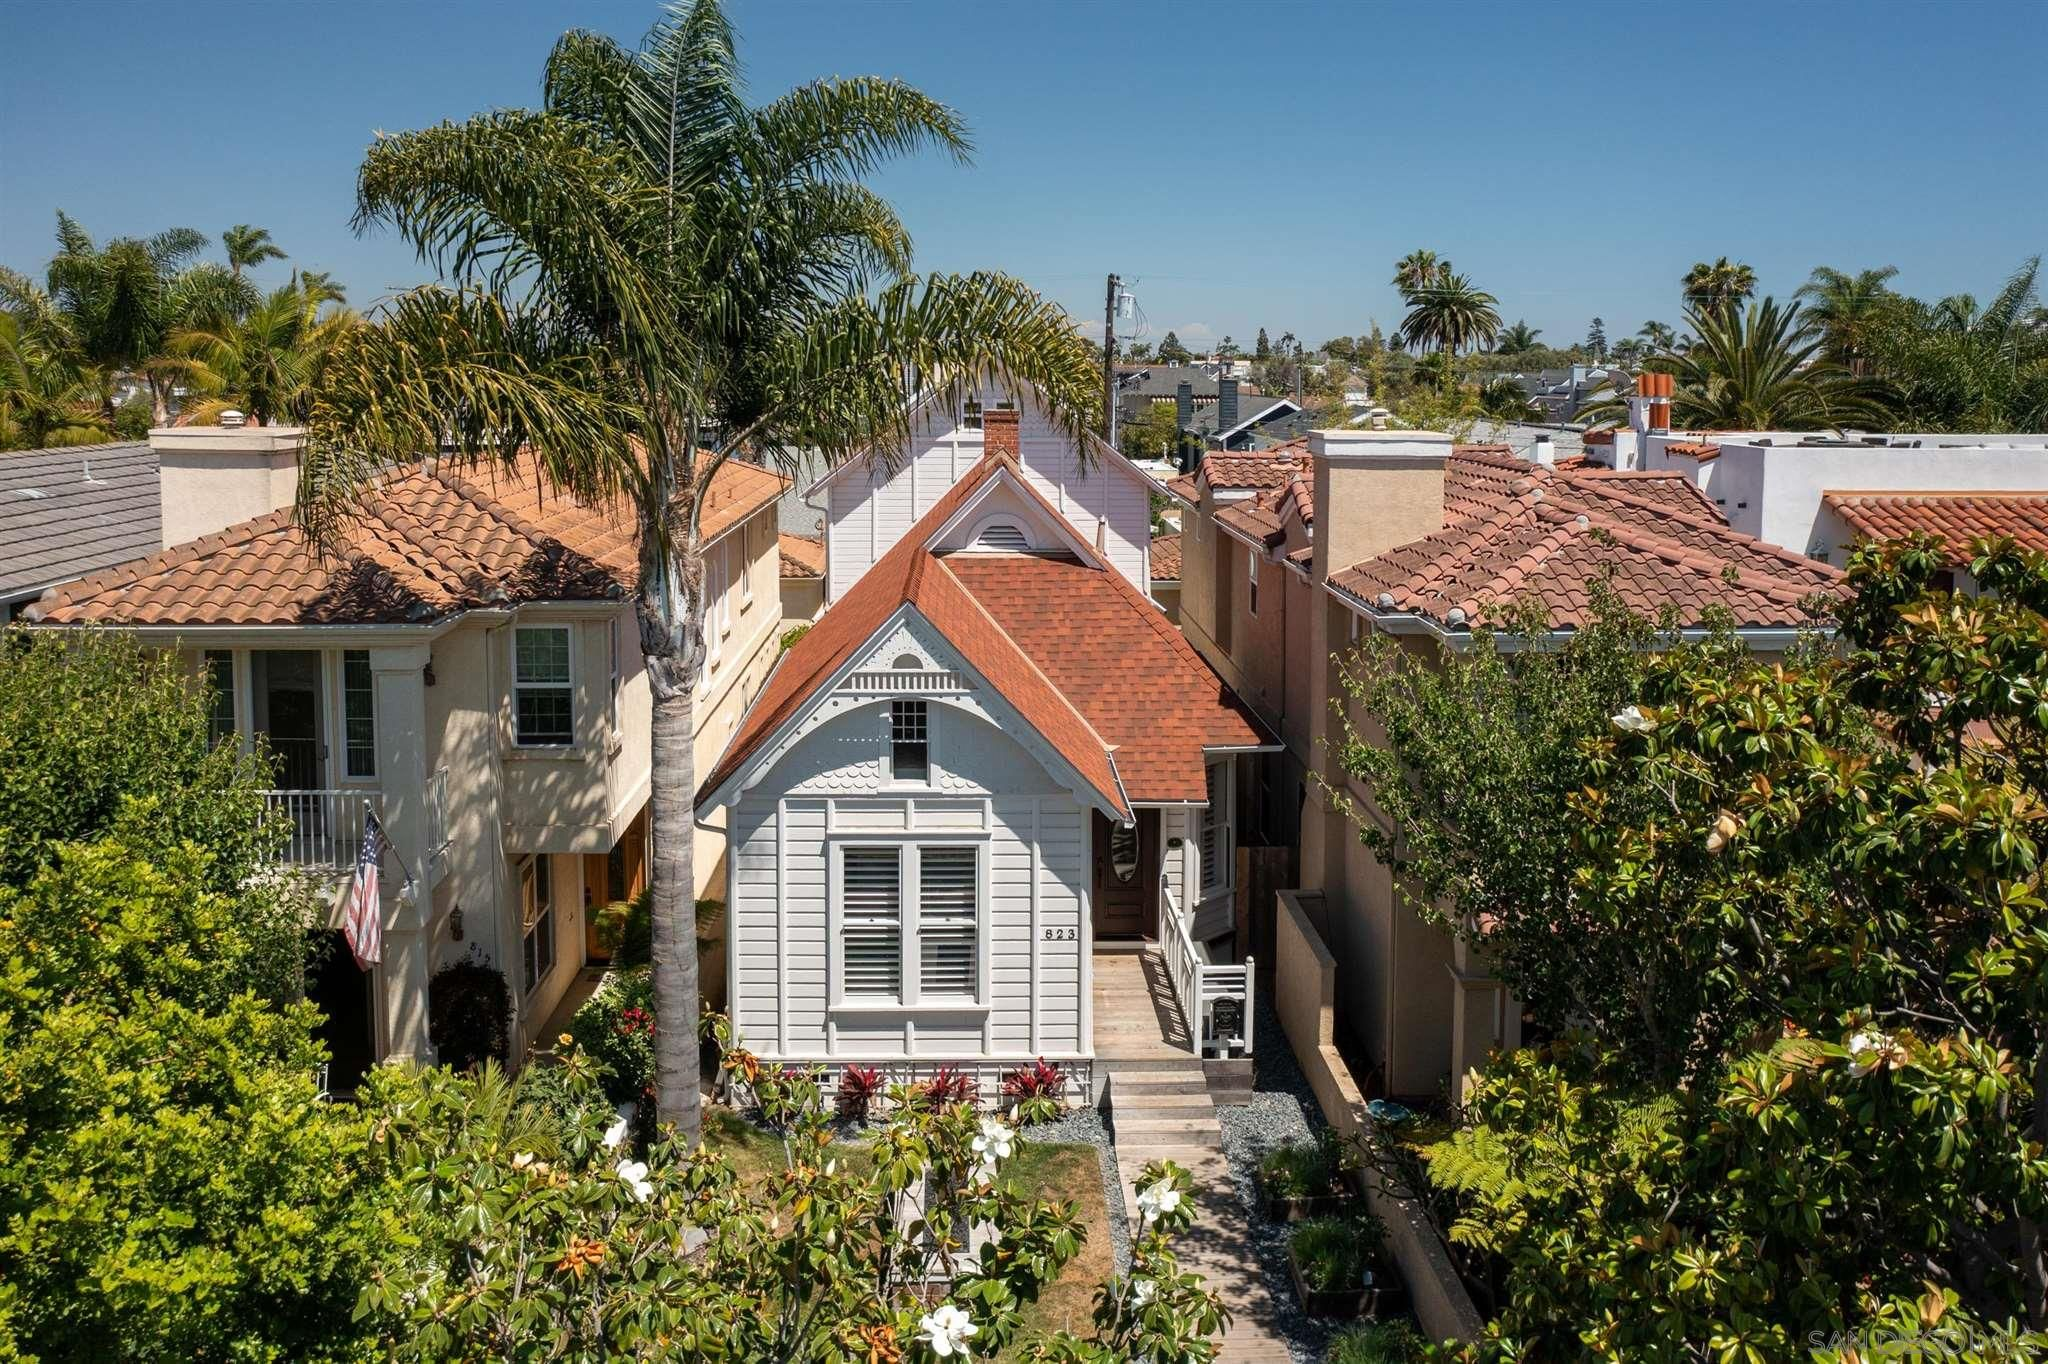 Main Photo: House for sale : 3 bedrooms : 823 H Ave in Coronado